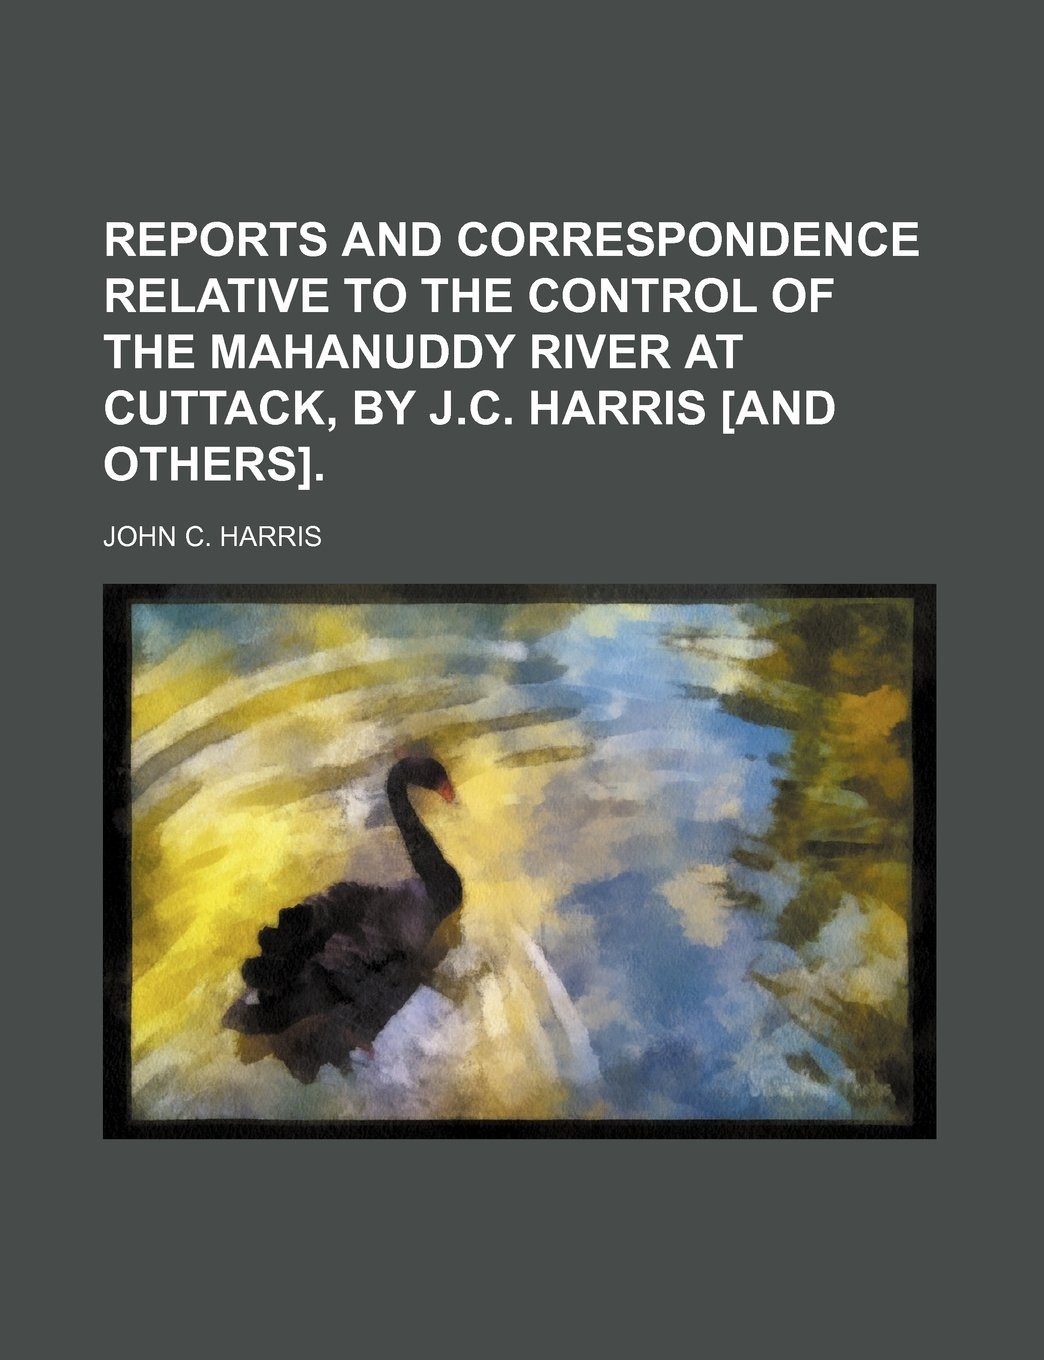 Download Reports and correspondence relative to the control of the Mahanuddy river at Cuttack, by J.C. Harris [and others] PDF